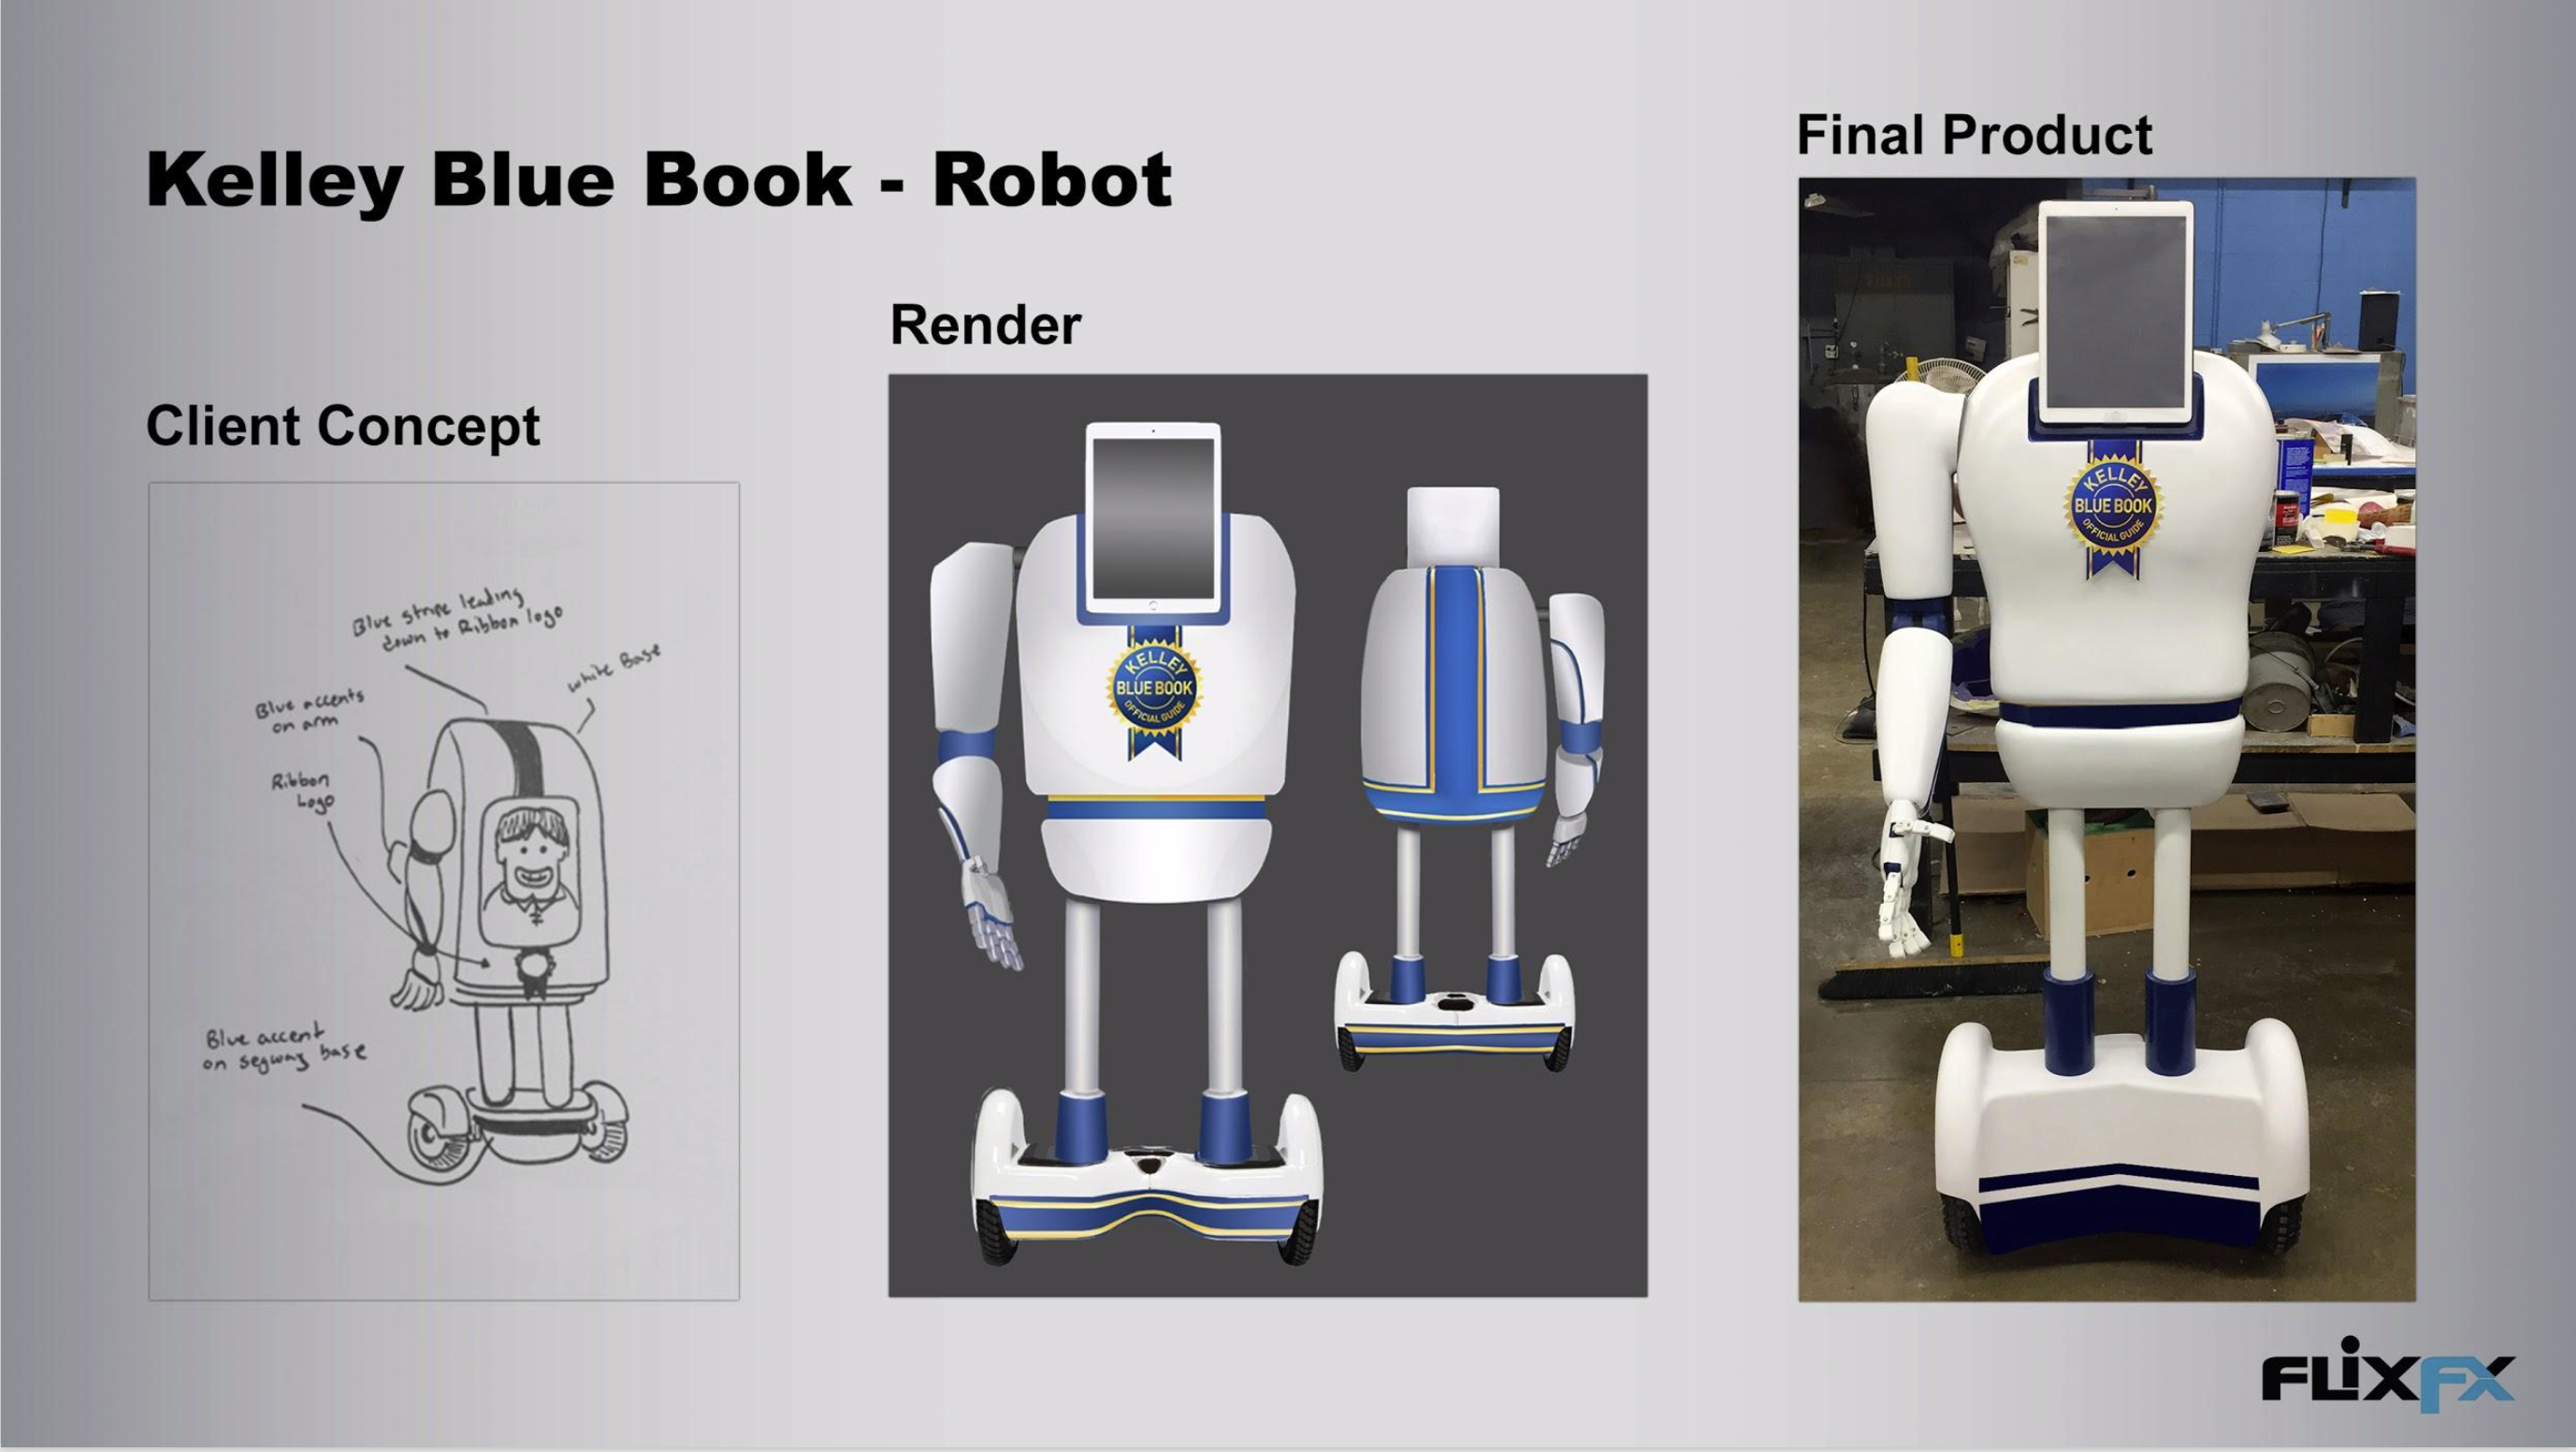 KBB Robot: 3D Design, CNC Milling, Vacuforming, Mechanical Fabrication, Flat Bed Printing, Scenic Paint & Metal Fabrication.